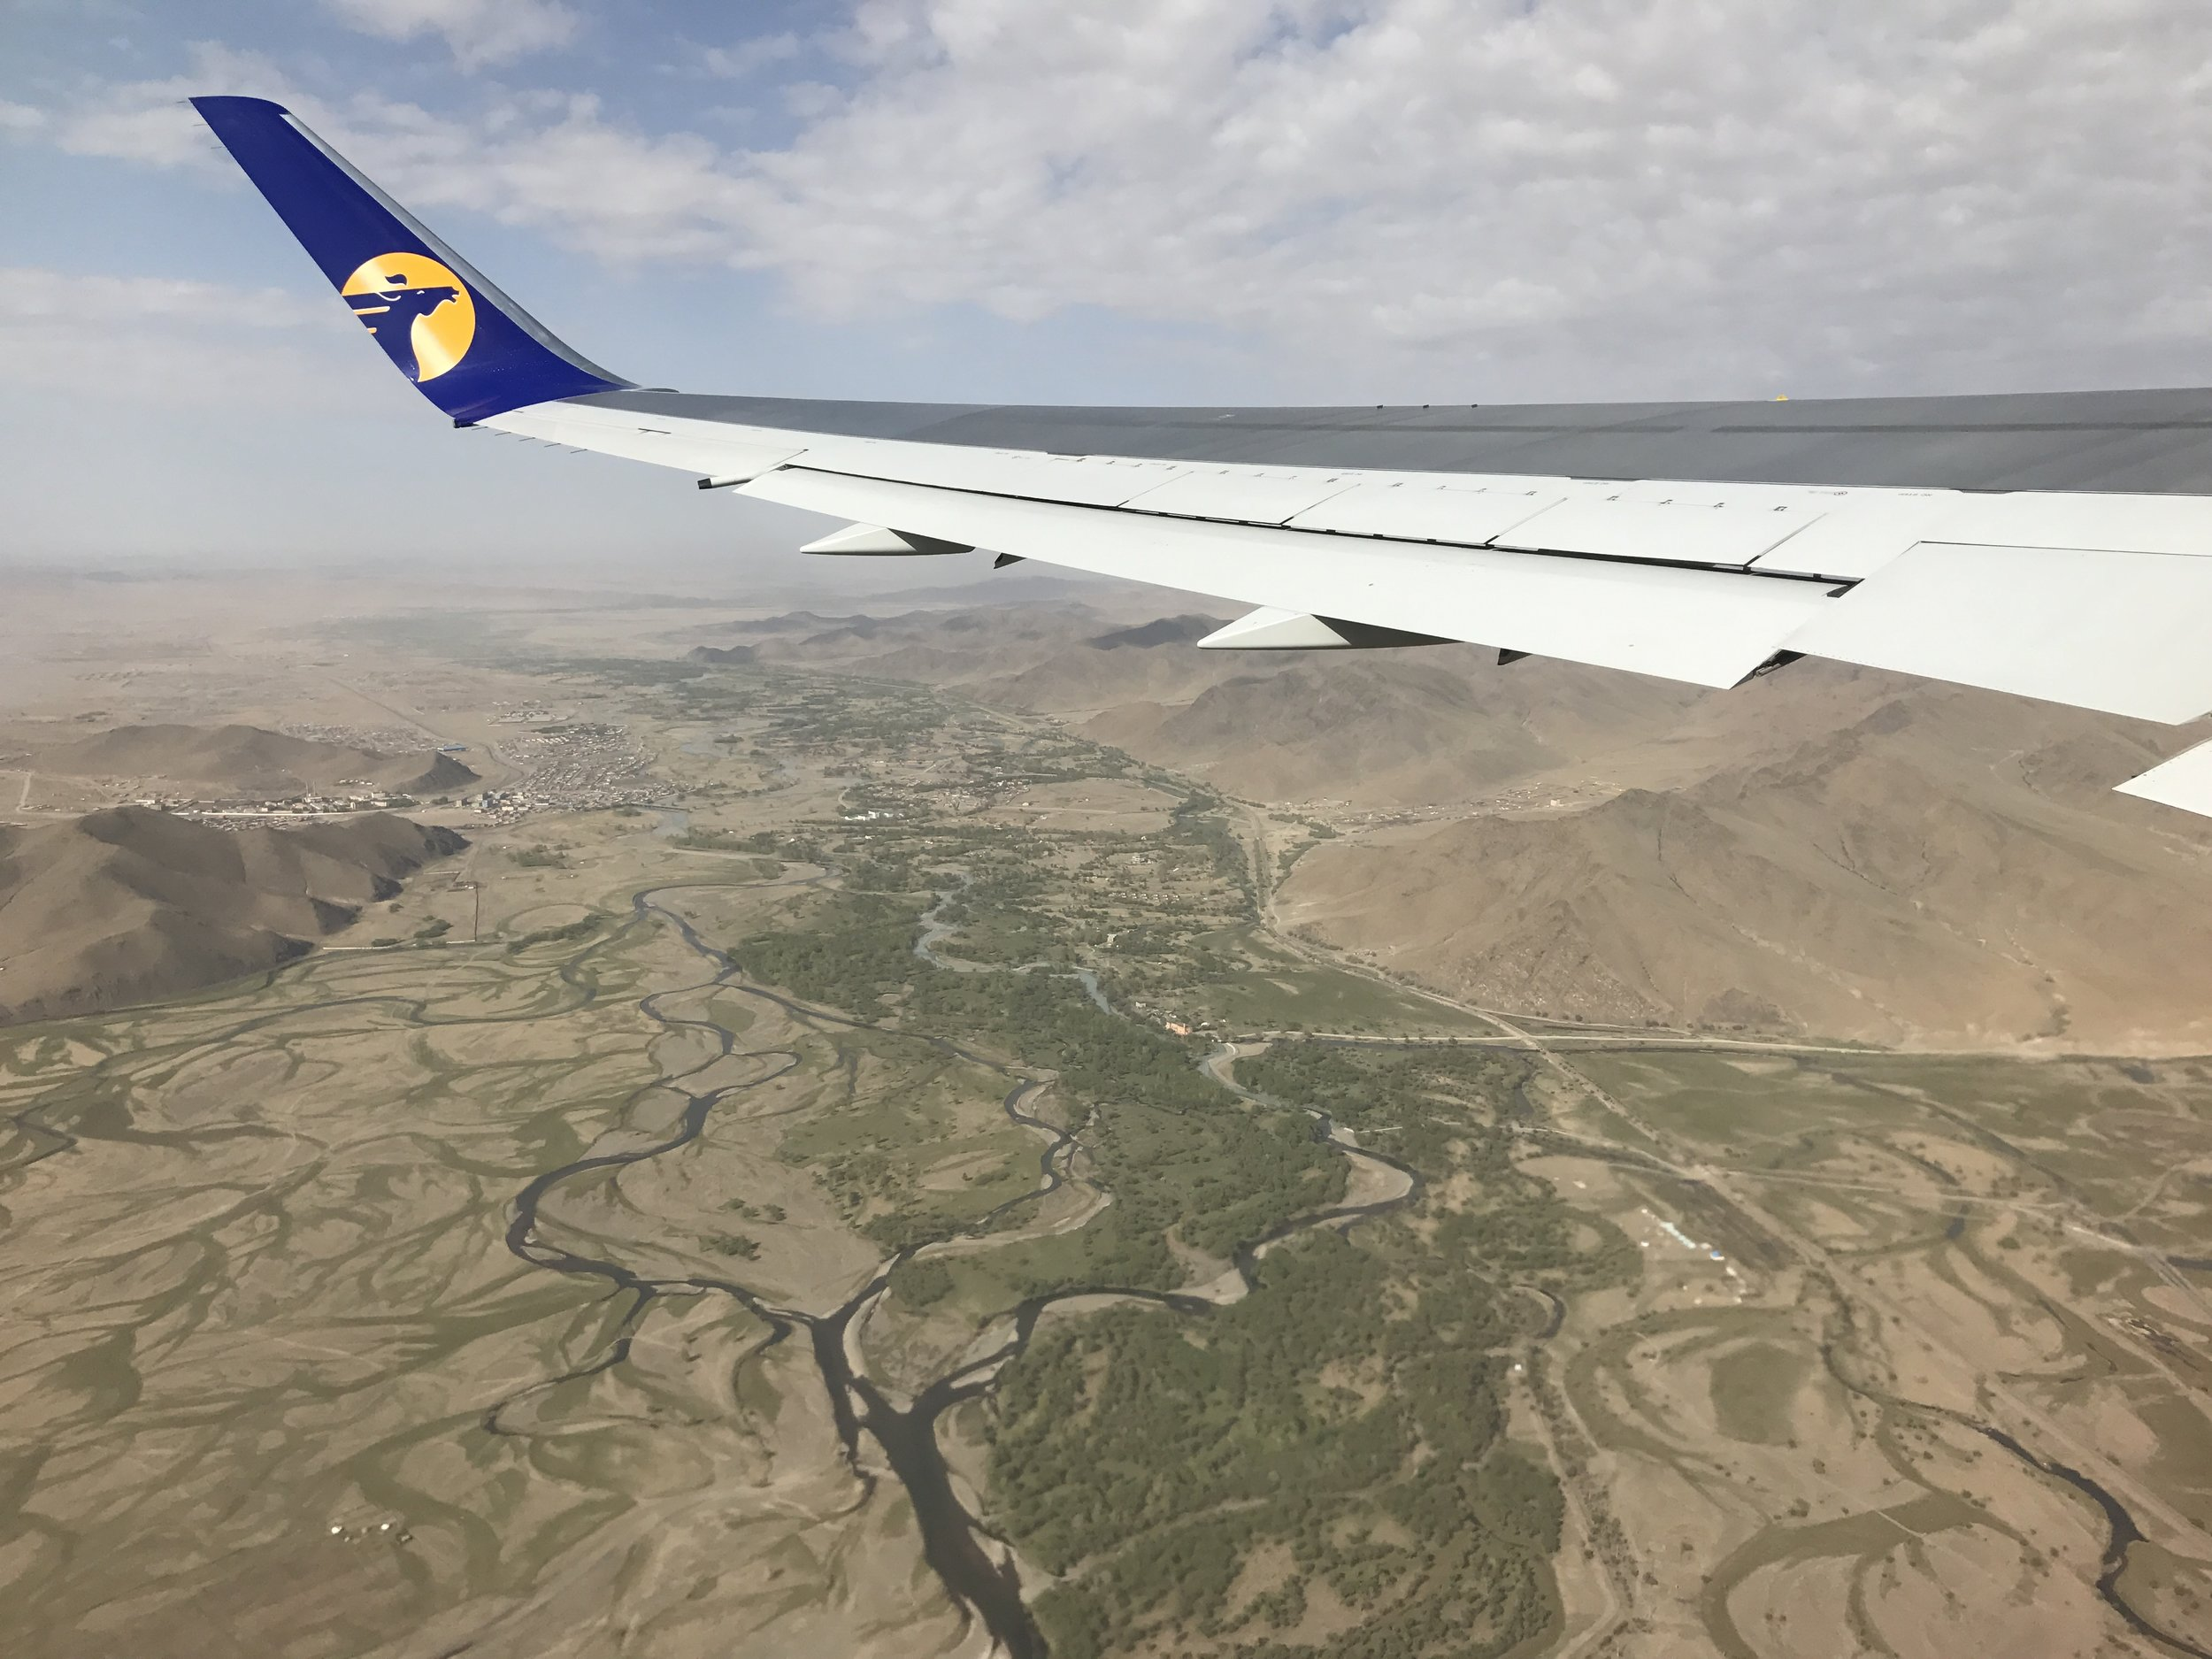 View out my window during our MIAT flight from Ulaan-baatar, Mongolia to Seoul, South Korea